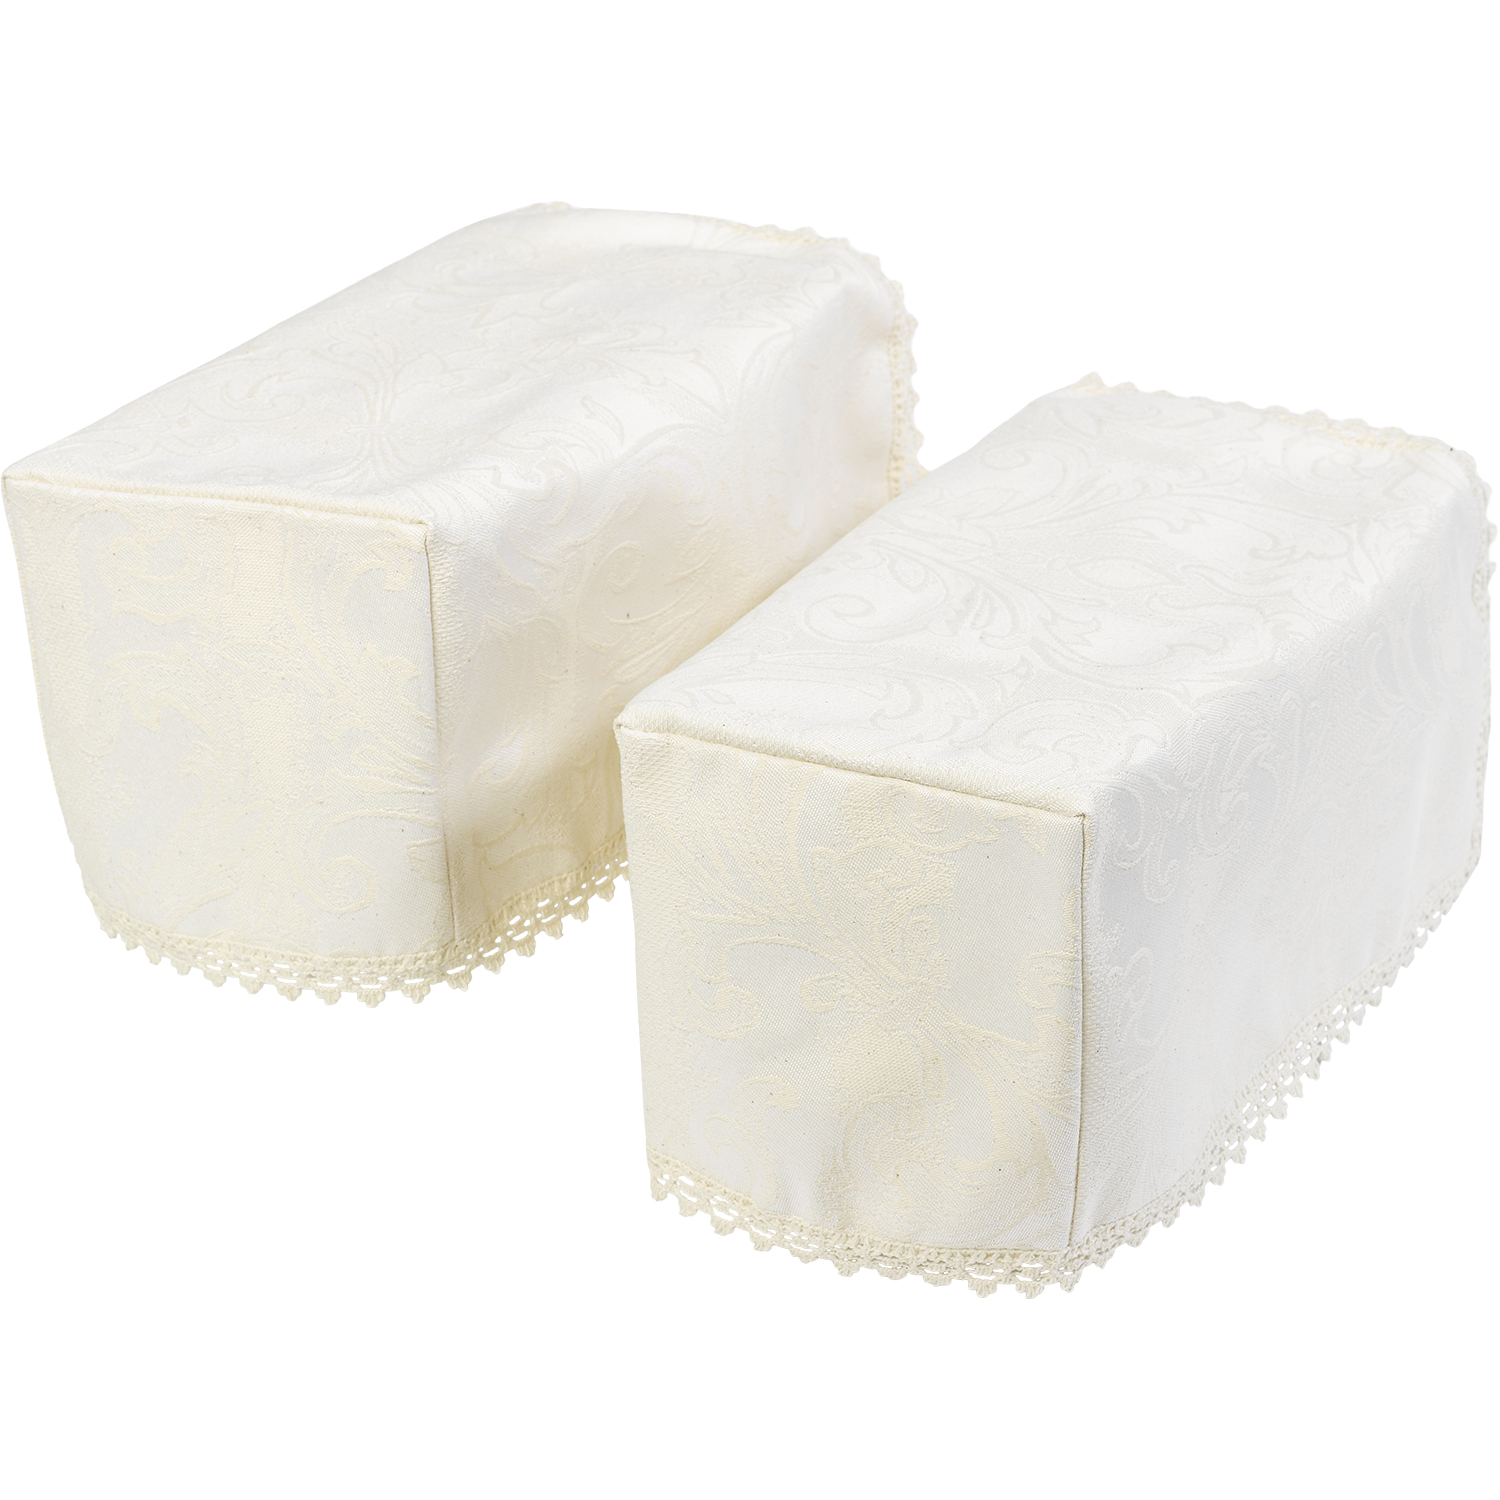 chair arm protectors set of 4 kitchen chairs cream decorative jacquard damask caps round or square